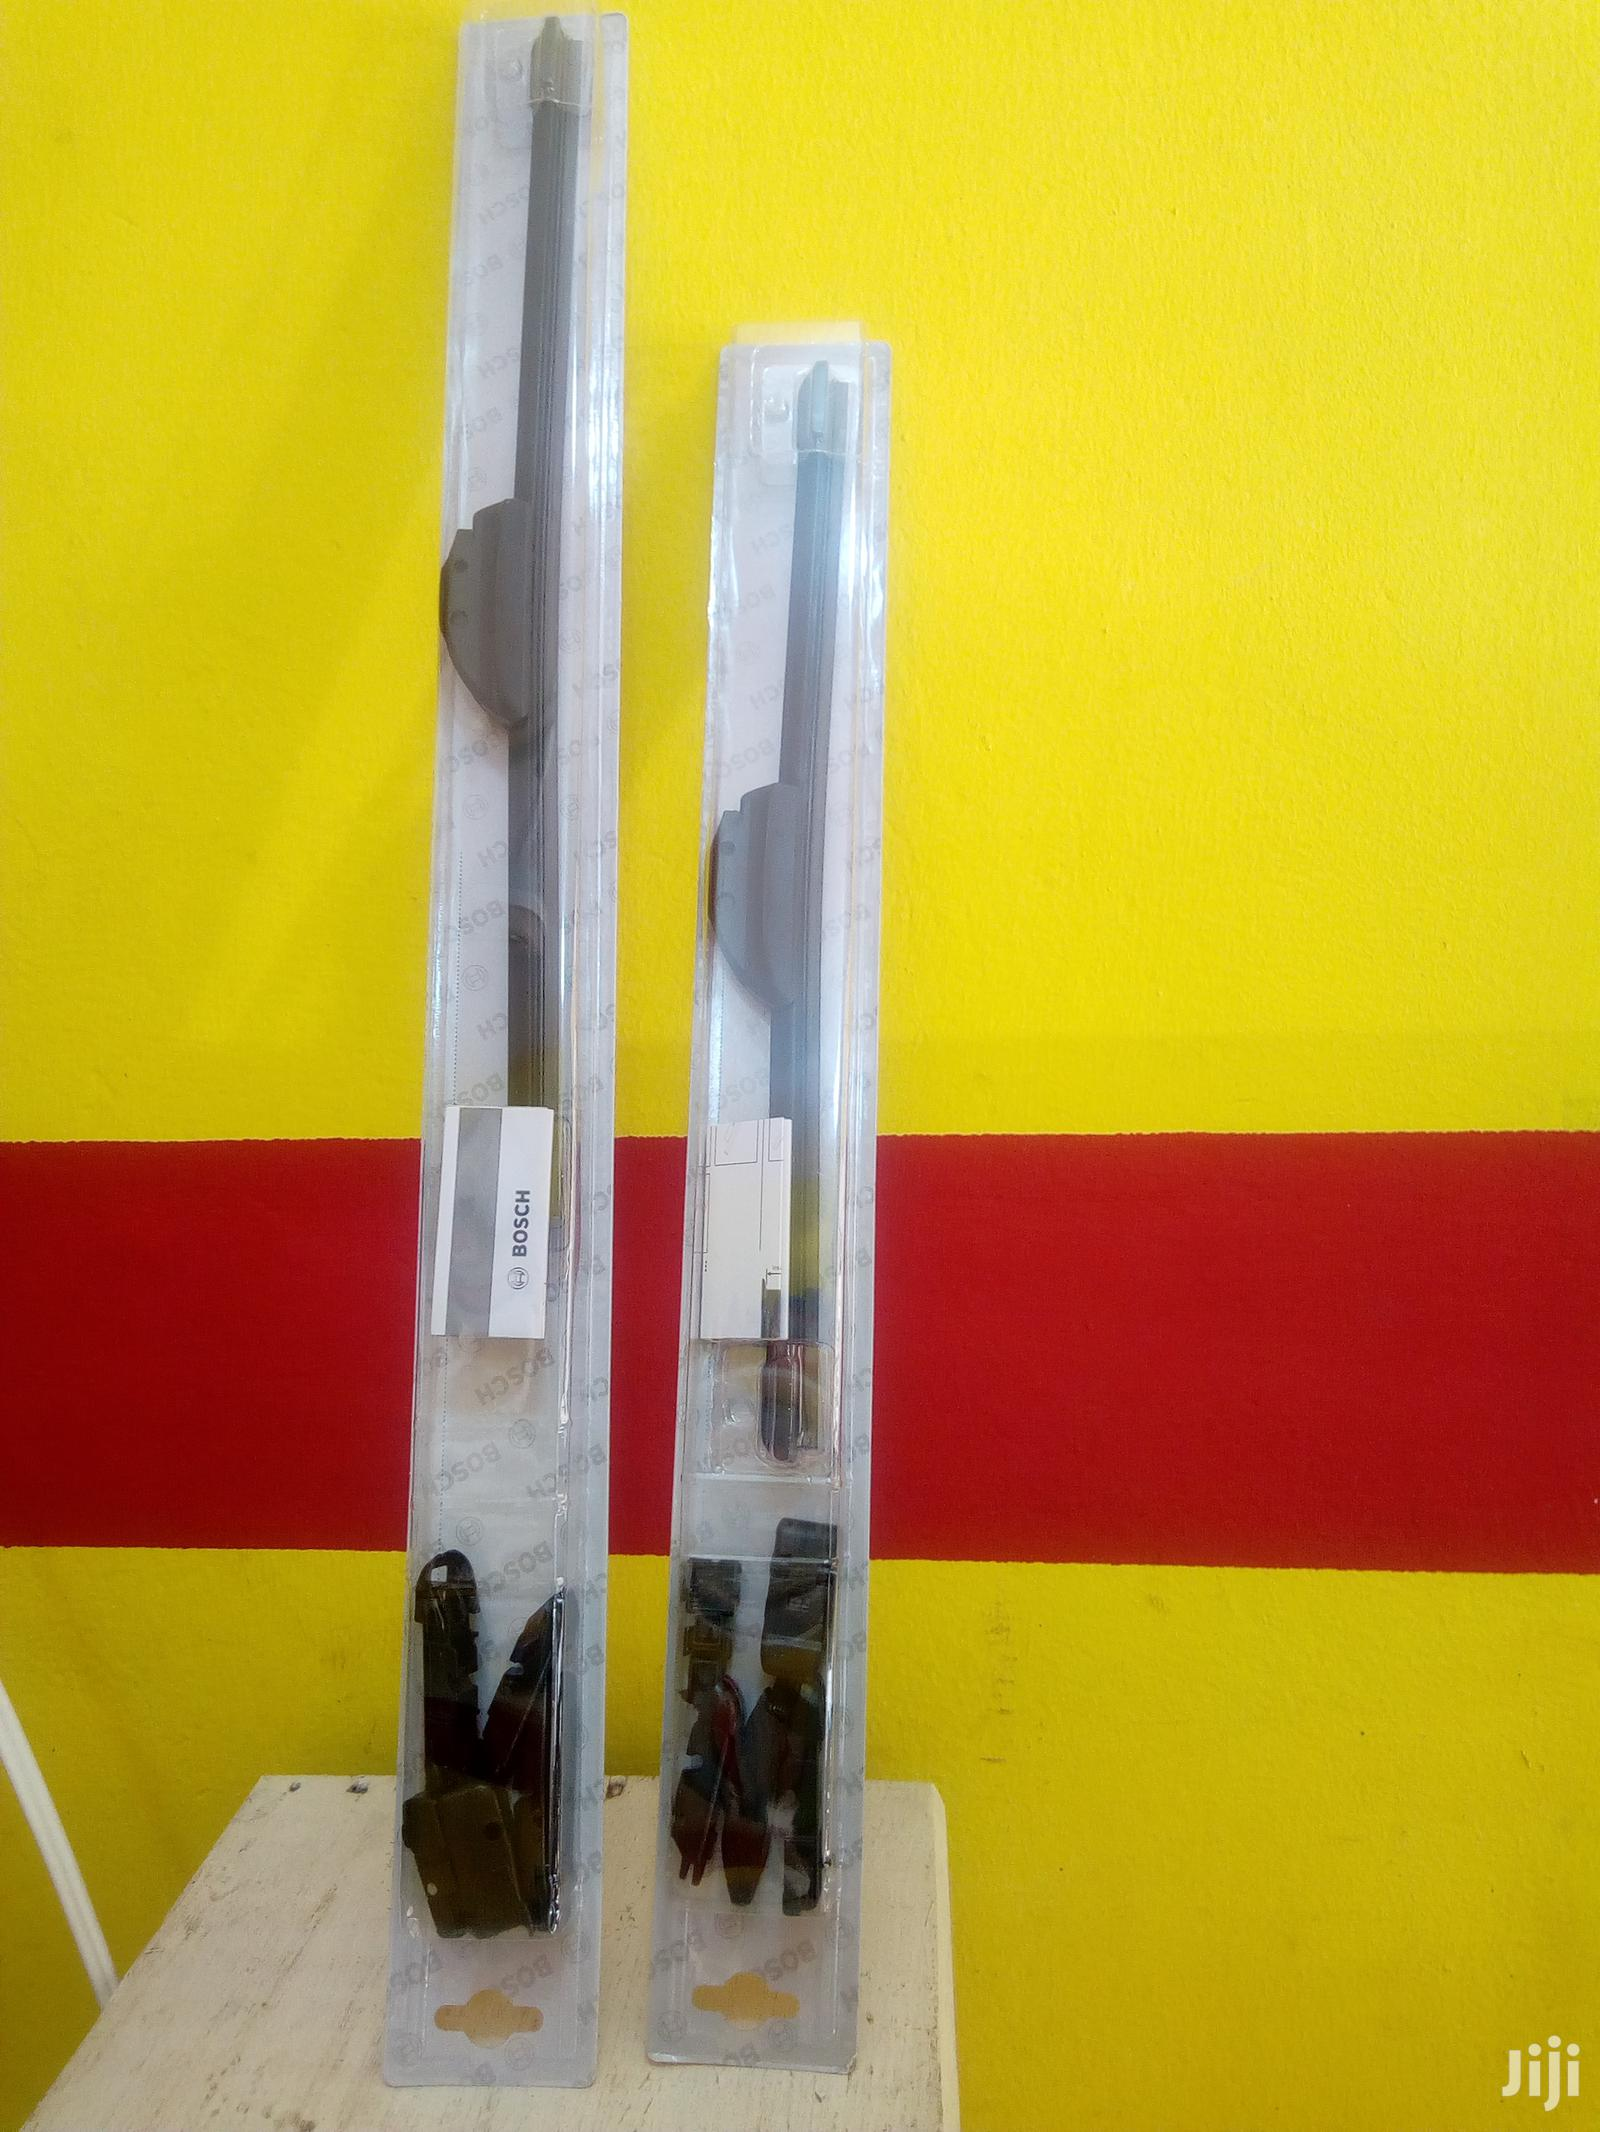 Bosch Wiper Blades For Cleaner Windscreen Glass + Delivery Nationwide | Vehicle Parts & Accessories for sale in North Kaneshie, Greater Accra, Ghana